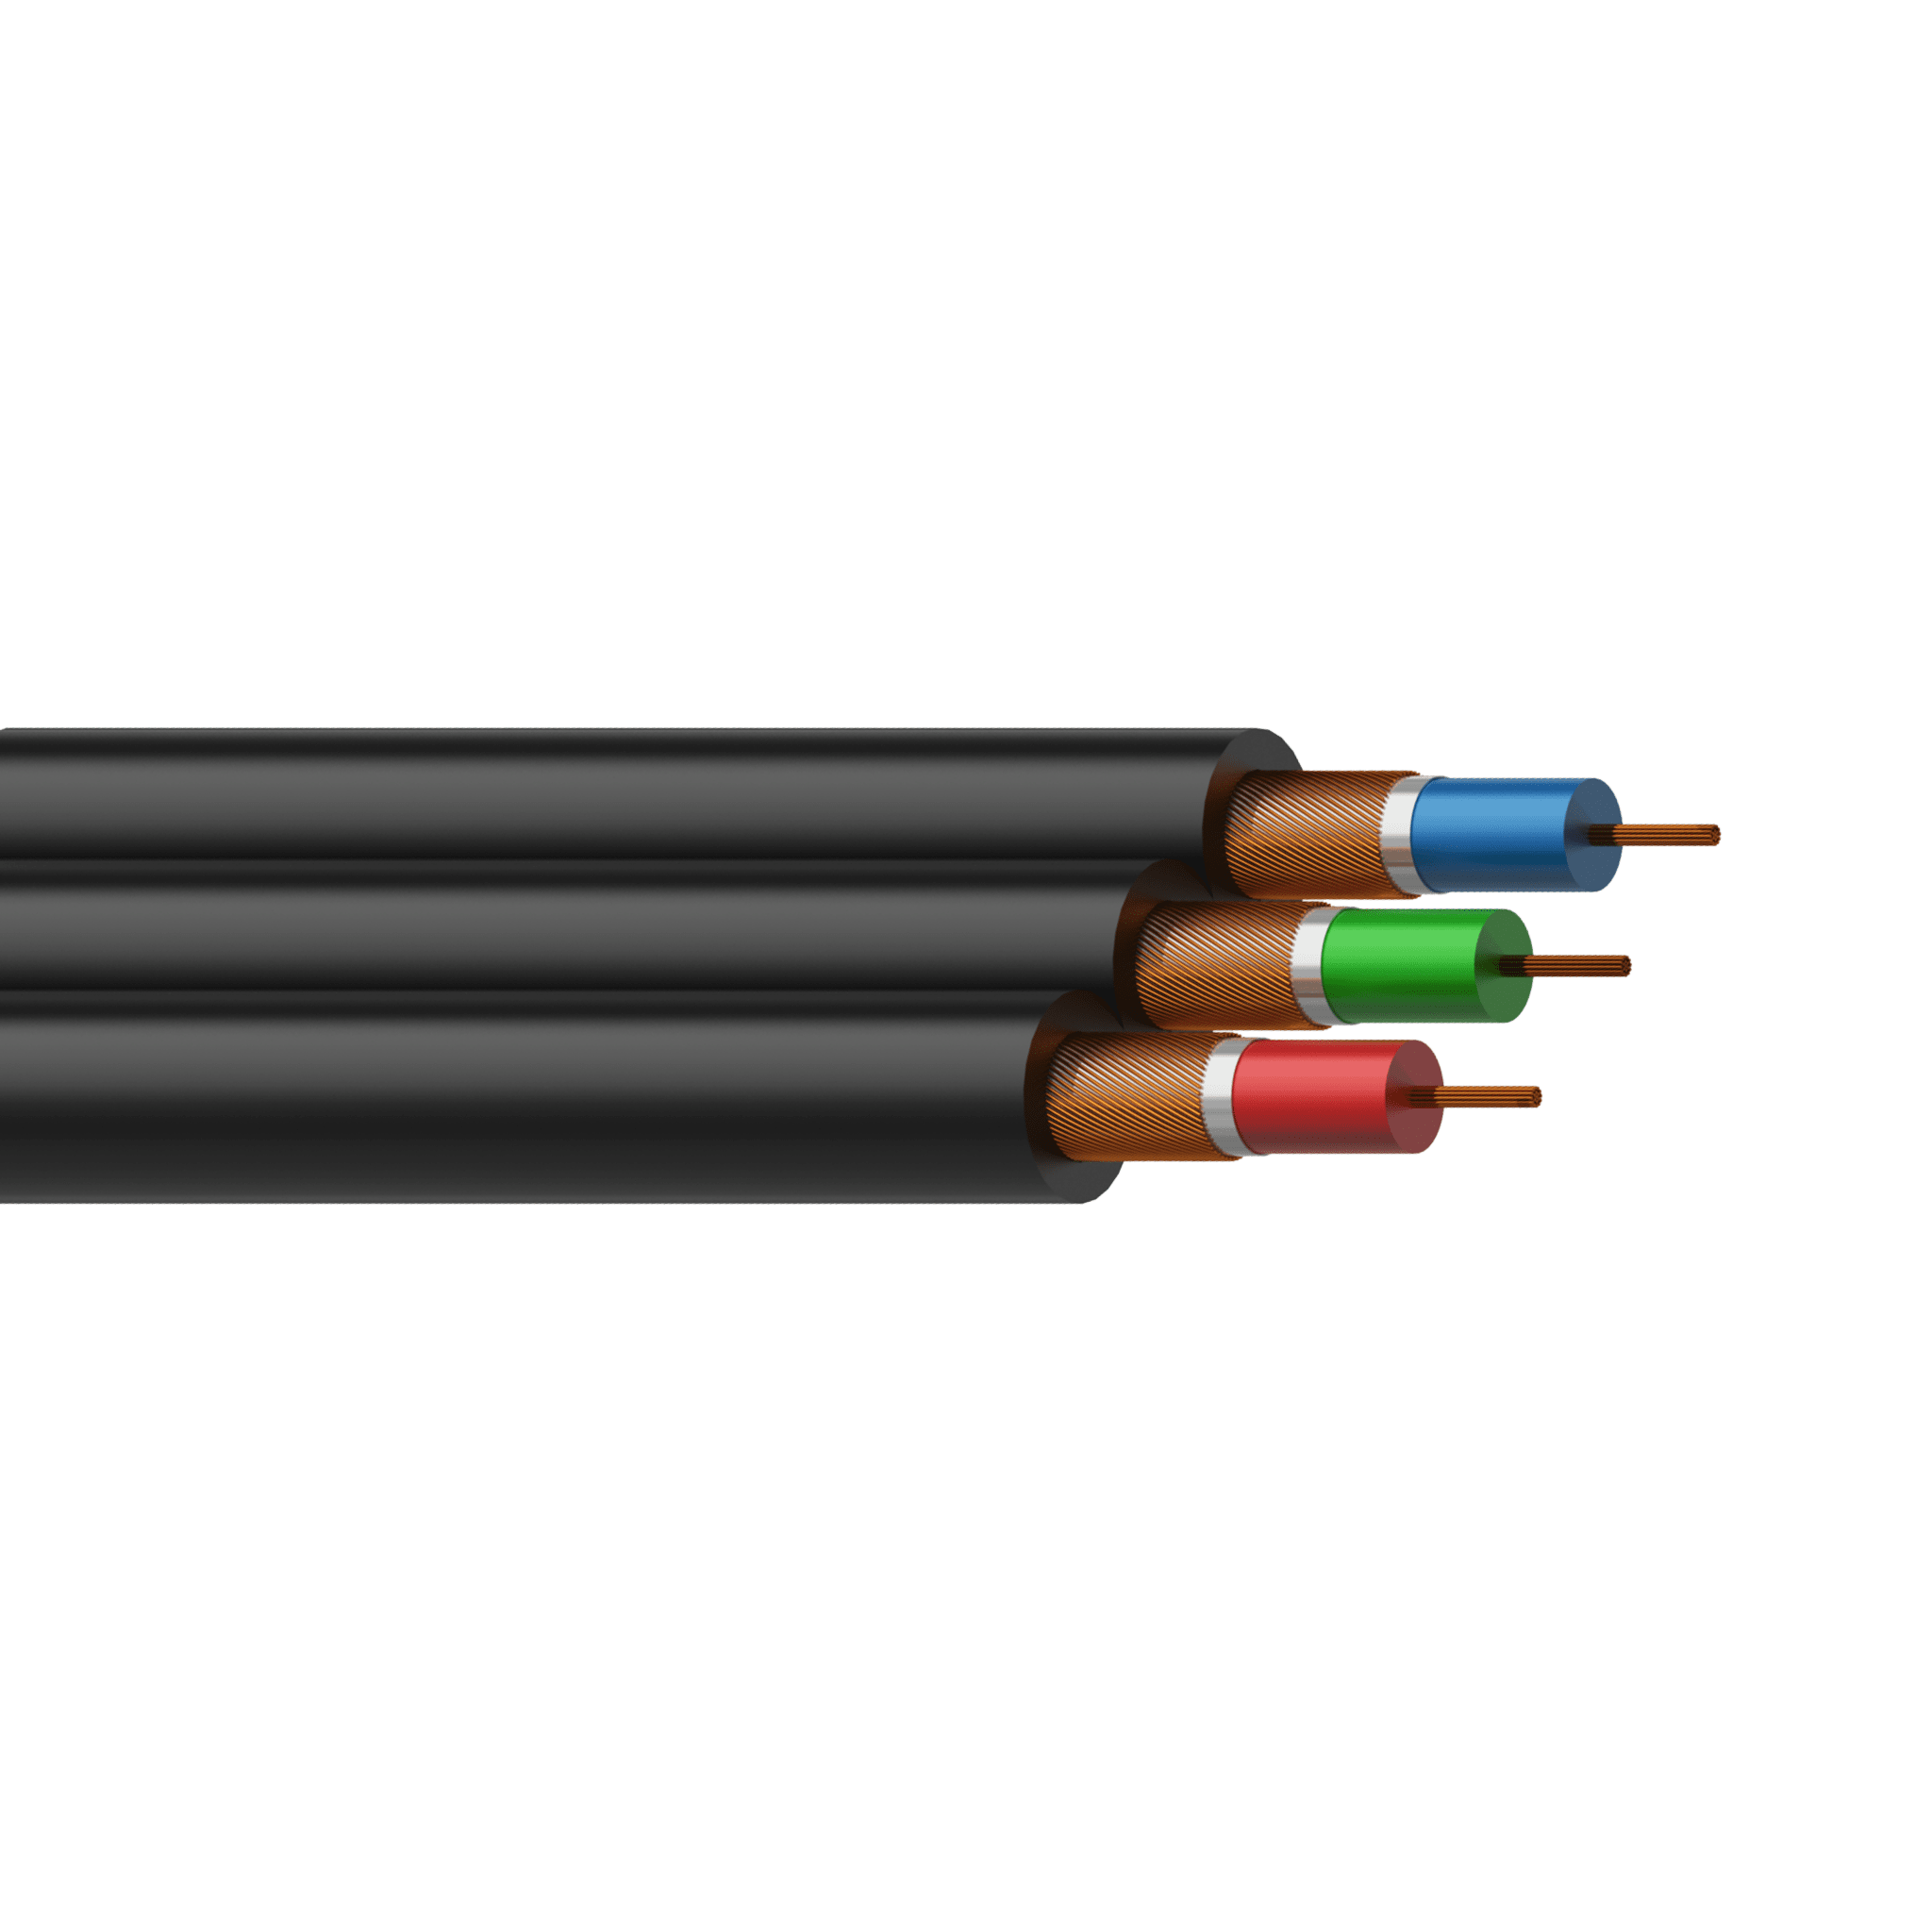 RGB600 - RGB video cable - flex - 0.22 mm² - 24 AWG